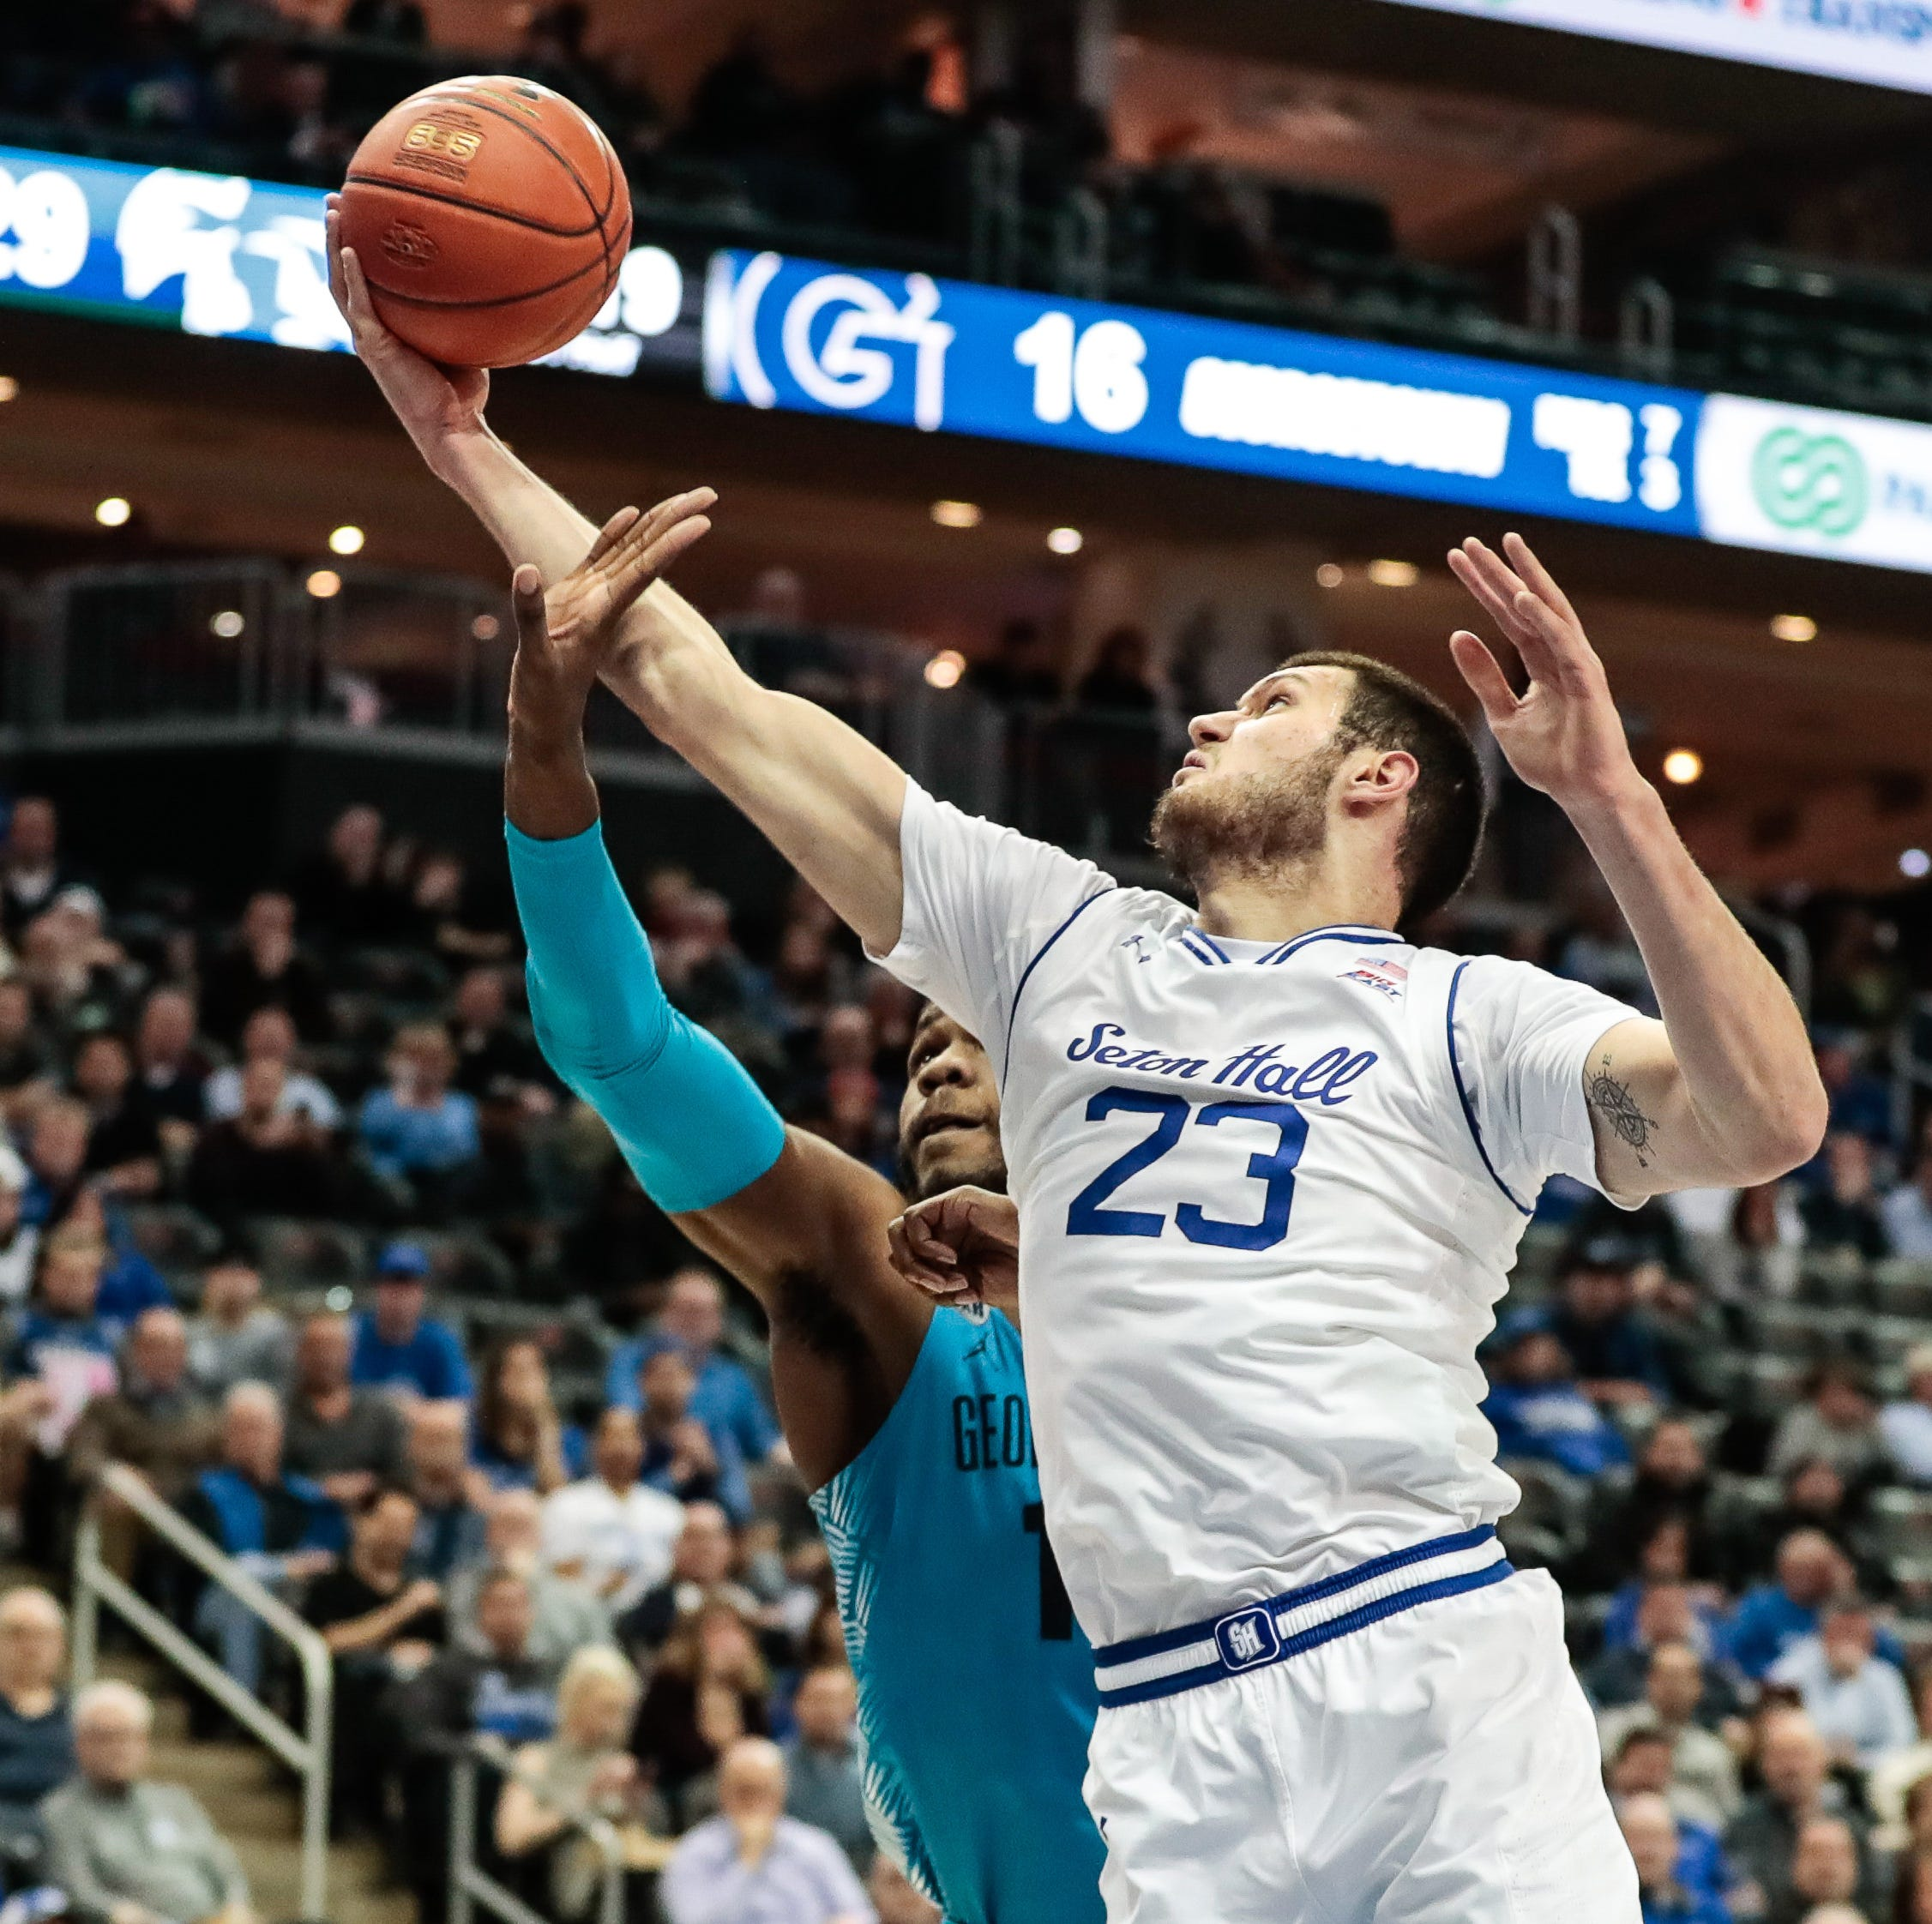 Seton Hall basketball: All cylinders fire in romp of Georgetown as NCAA bid draws closer